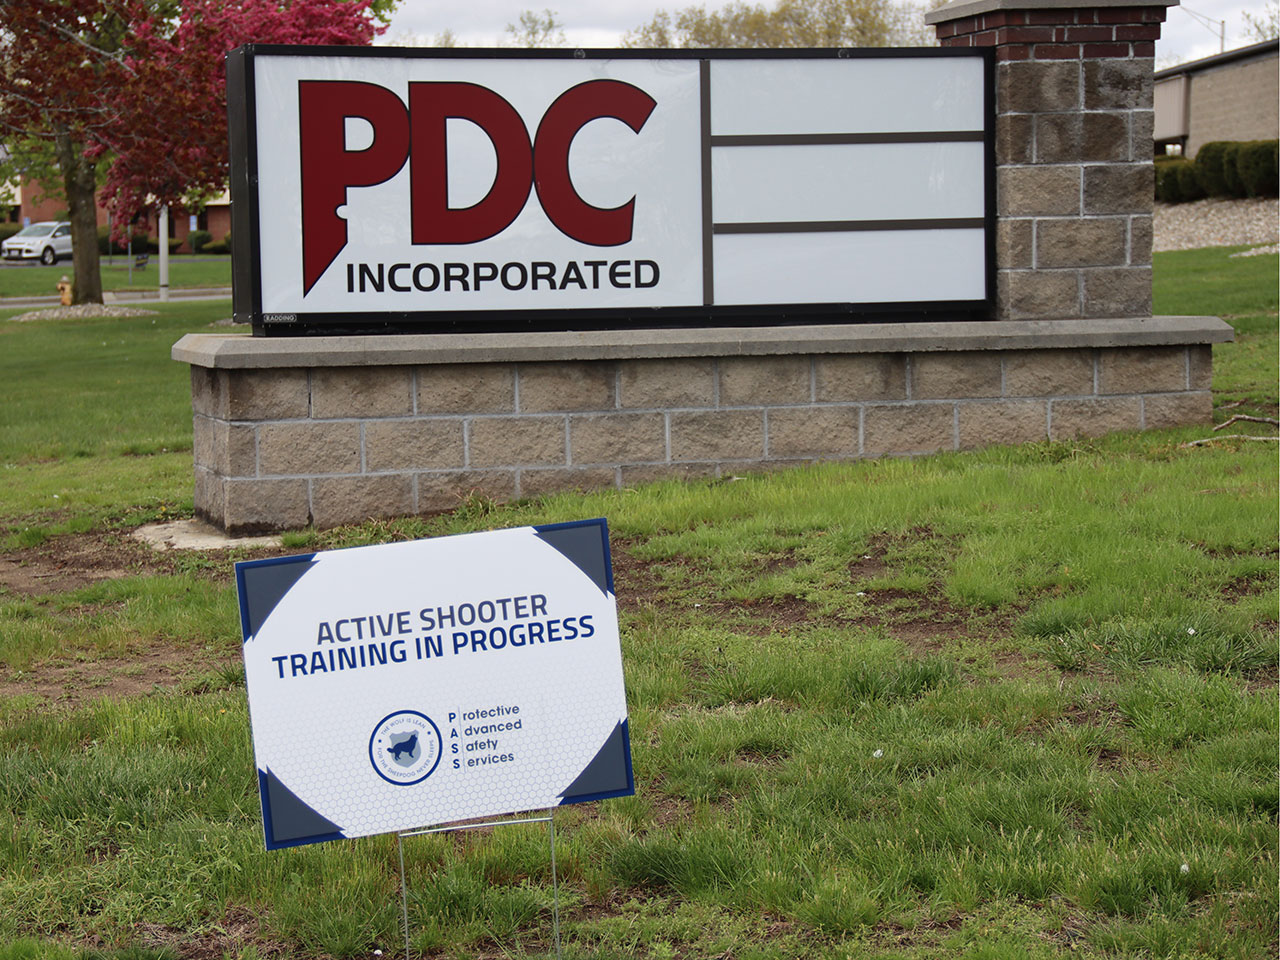 PDC Inc active shooter training signs